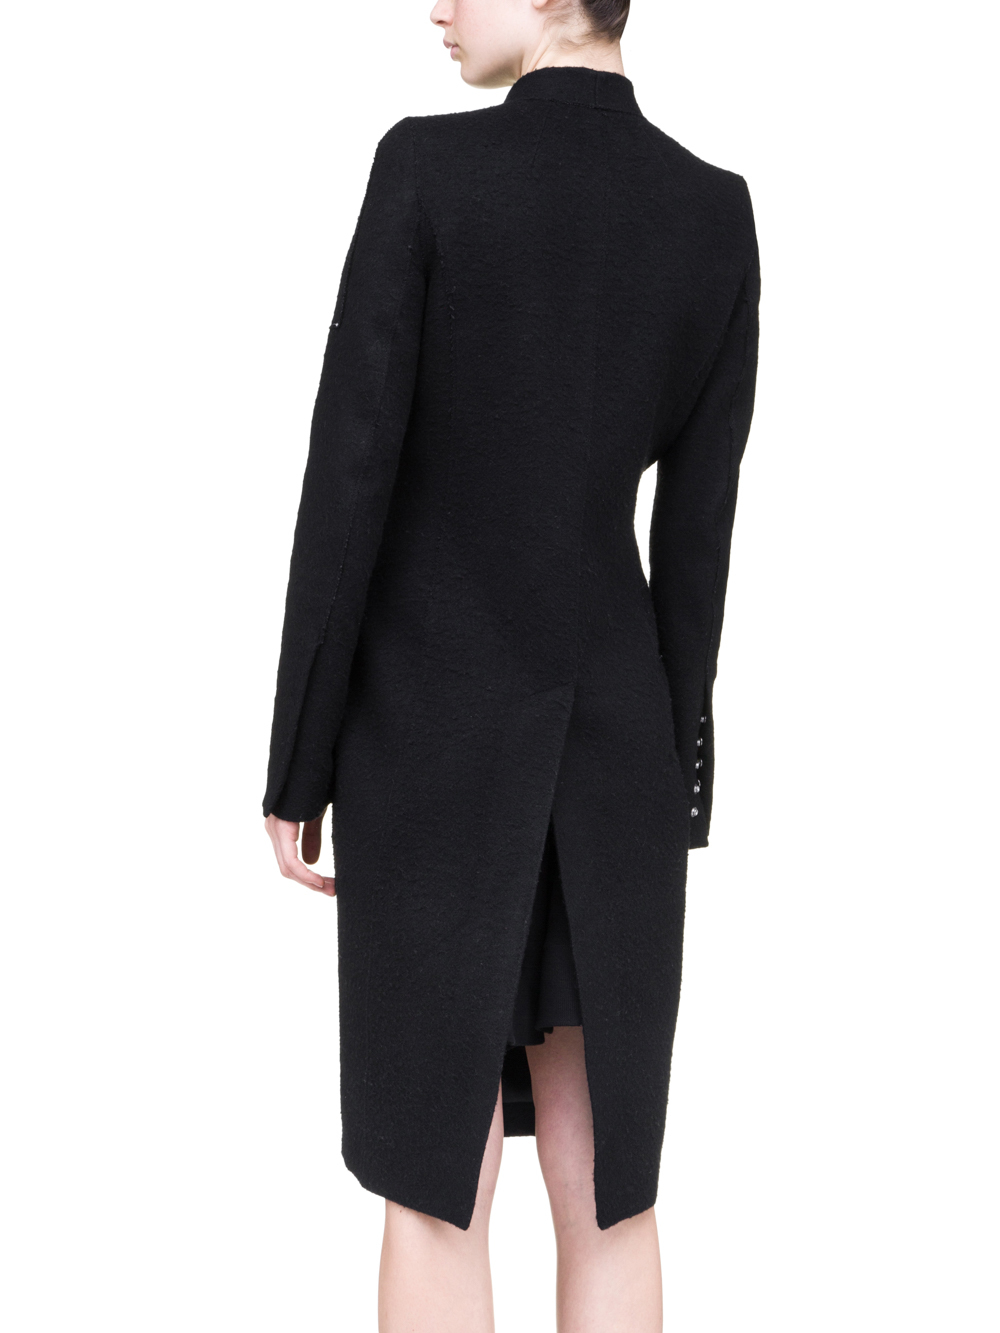 RICK OWENS OFF-THE-RUNWAY SNAP SOFT COAT IN BLACK CAMEL WOOL